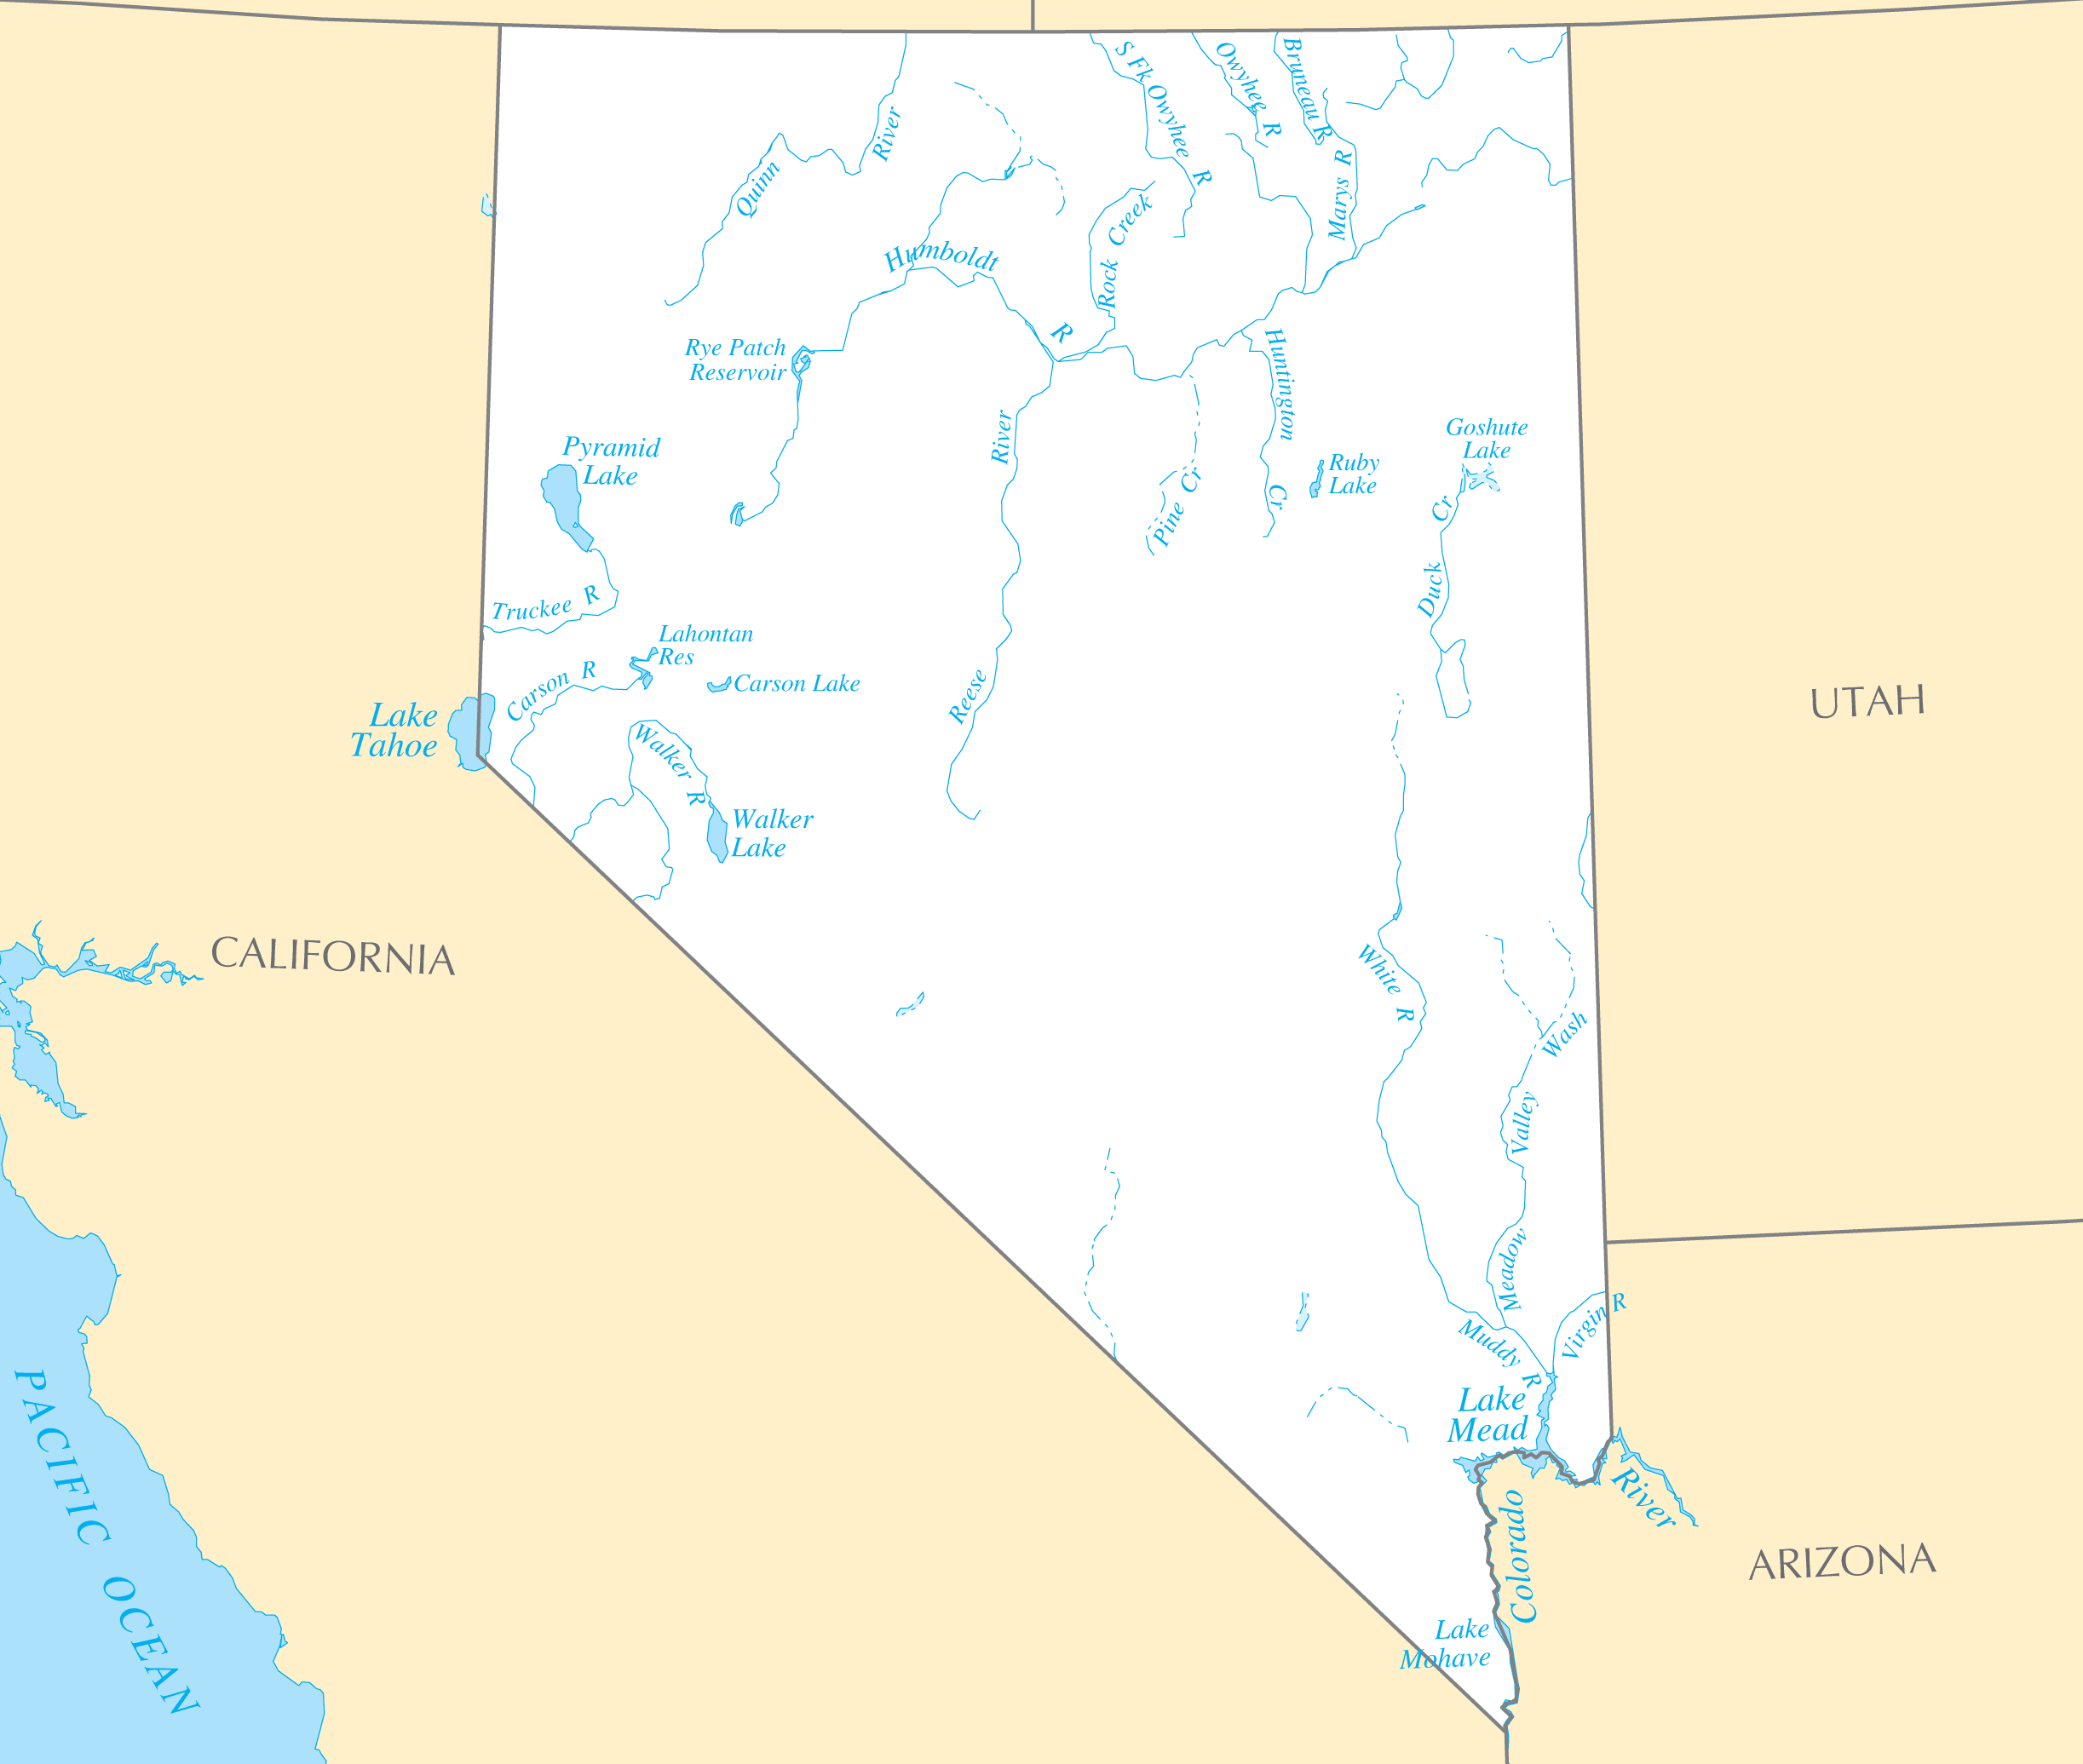 Nevada Rivers And Lakes large map